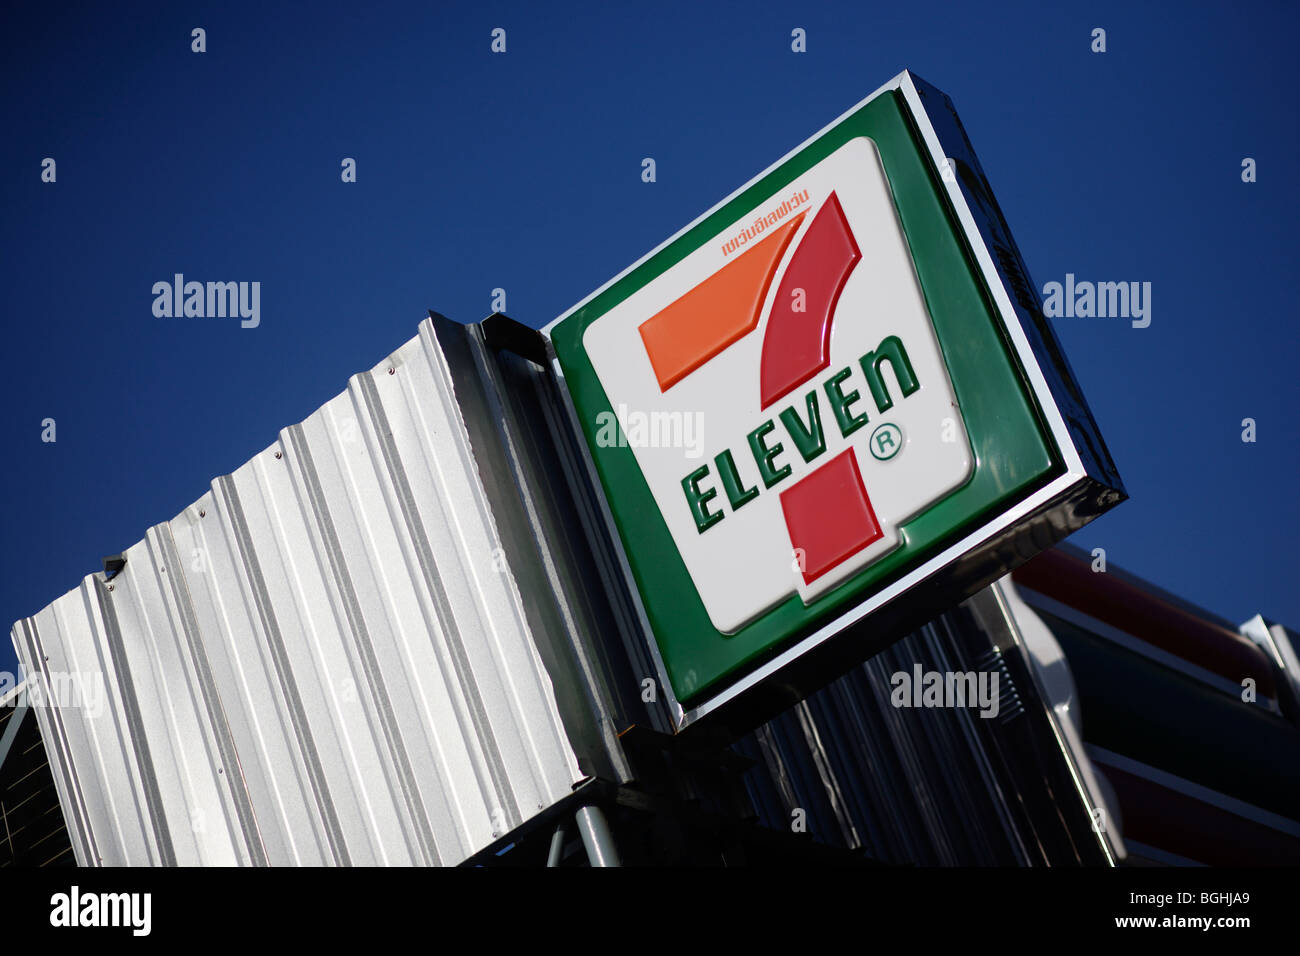 A Sign For A 7 11 Or Seven Eleven Store In Thailand Stock